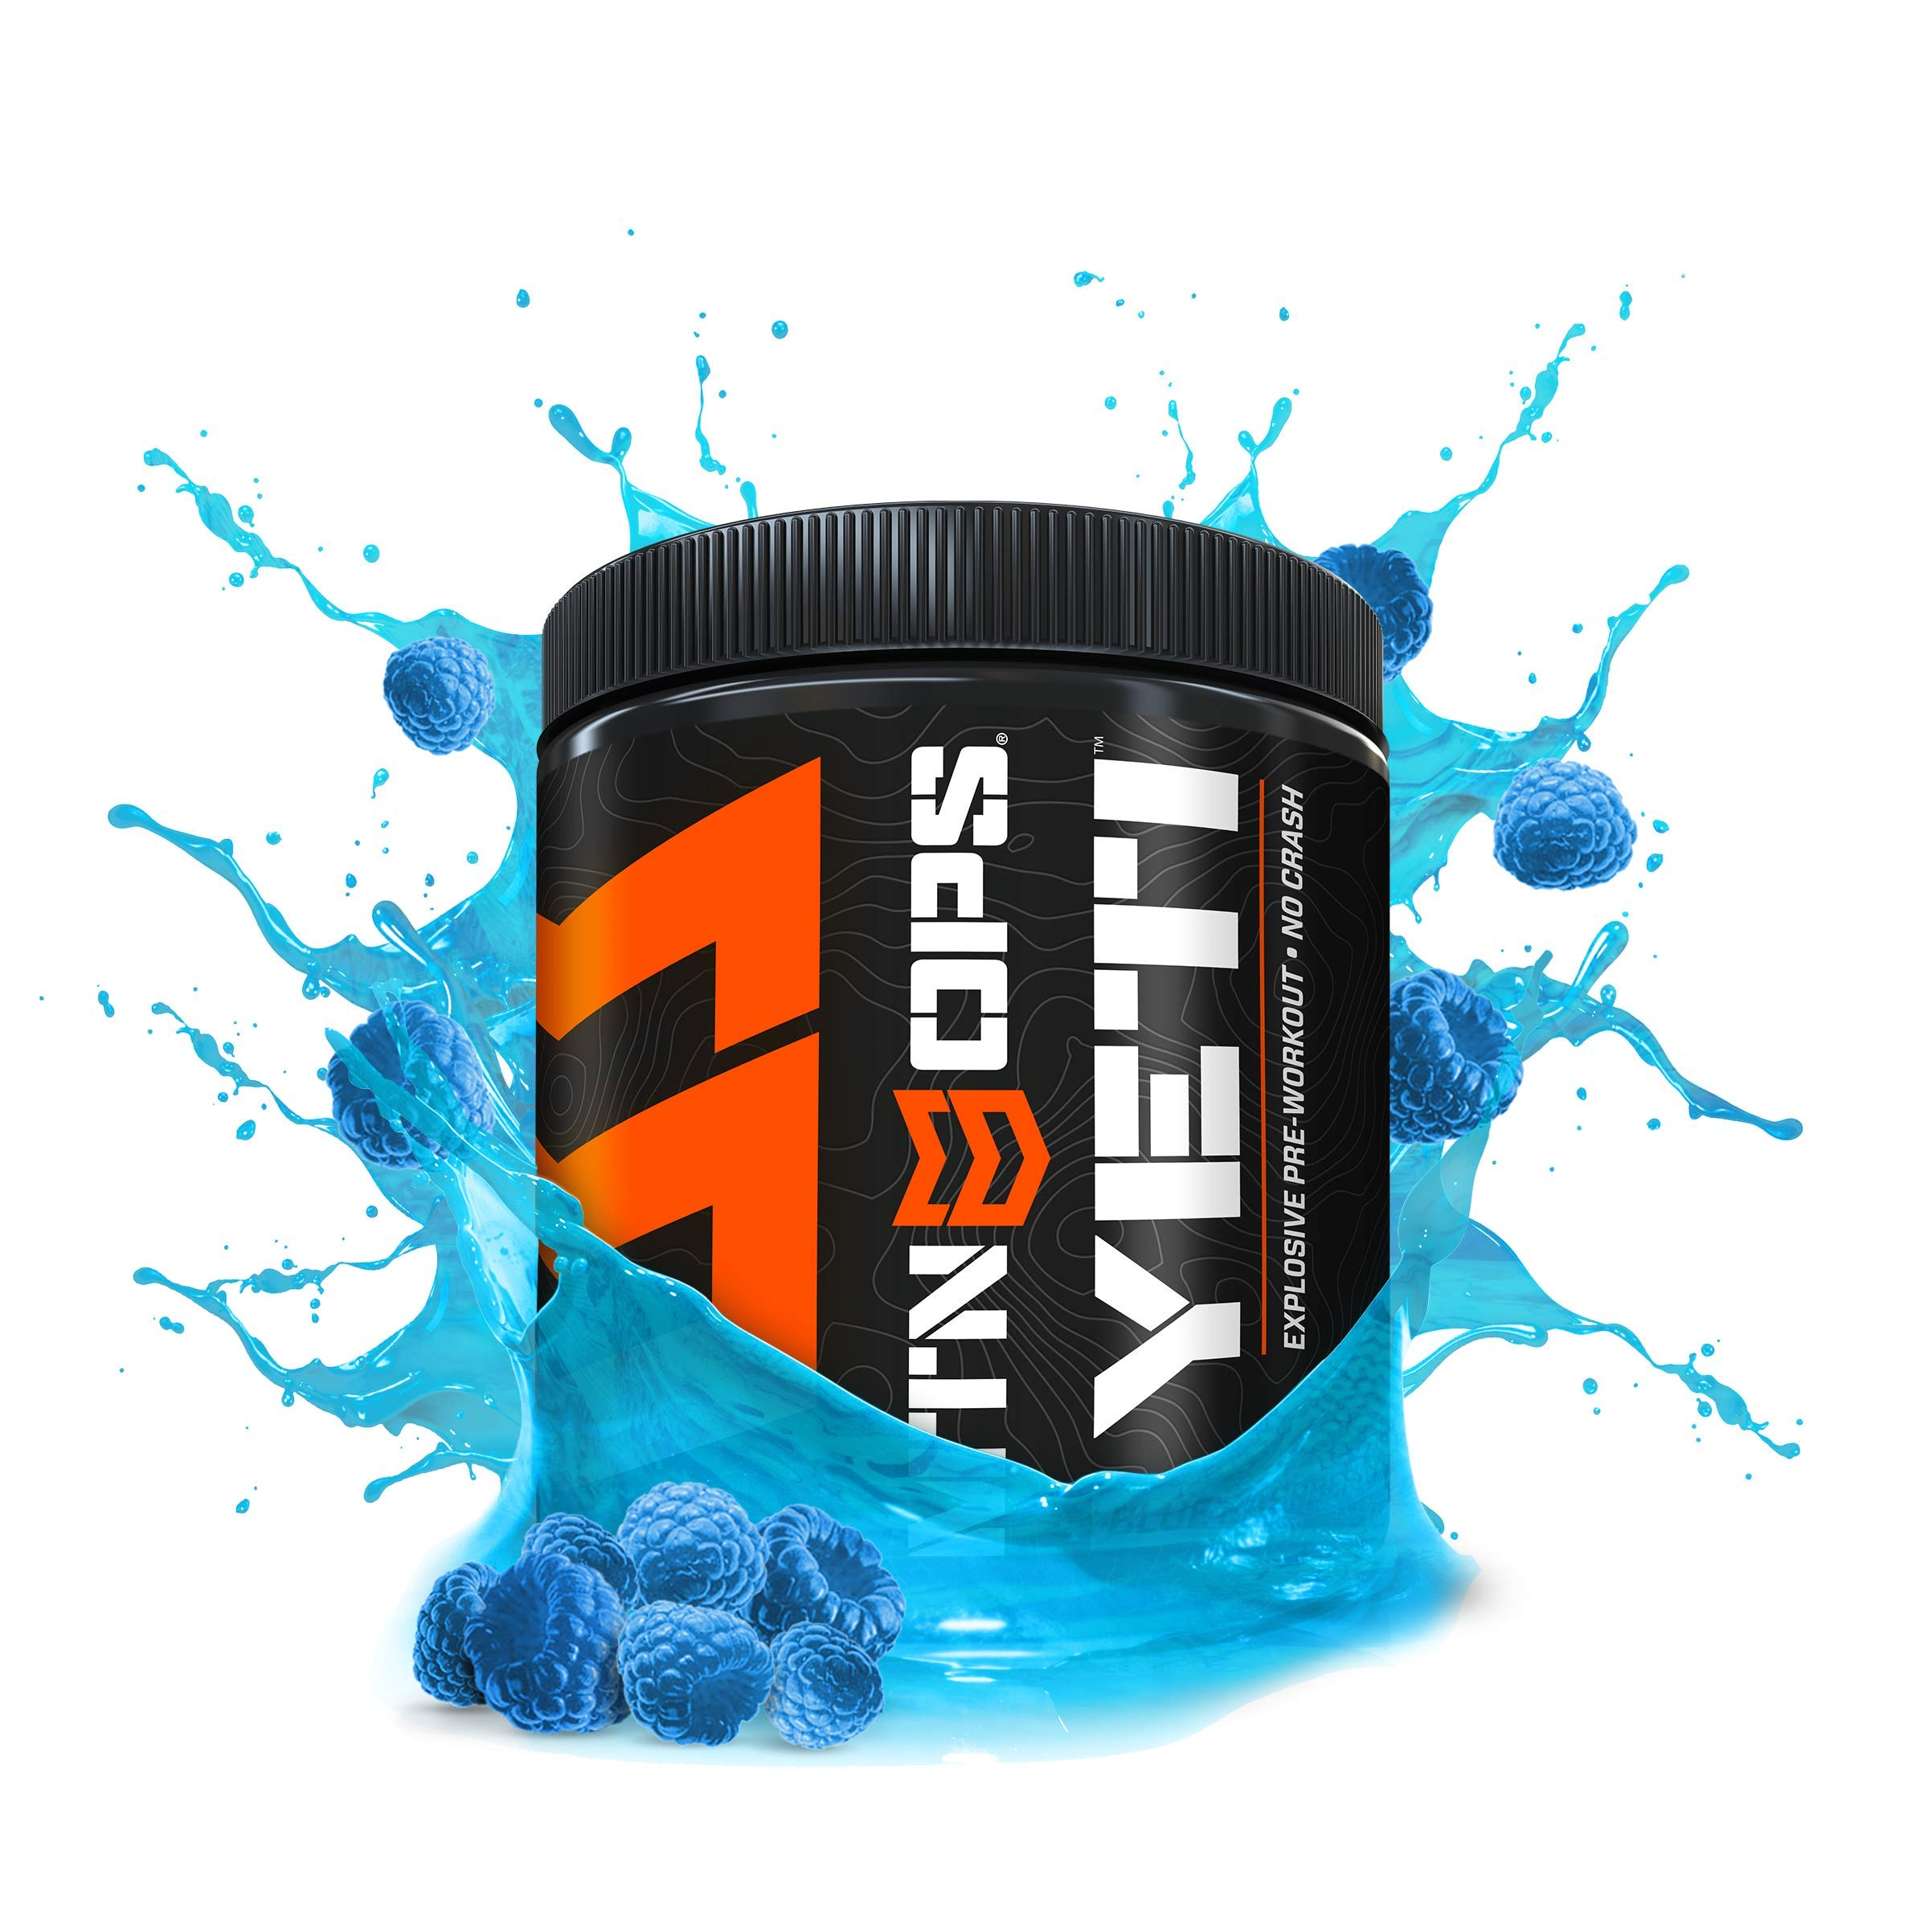 Yeti Monster Pre-Workout Supplement, Nitric Oxide Booster (No Crash), Blue Raspberry Flavor, 30 Servings per Container by MTN OPS